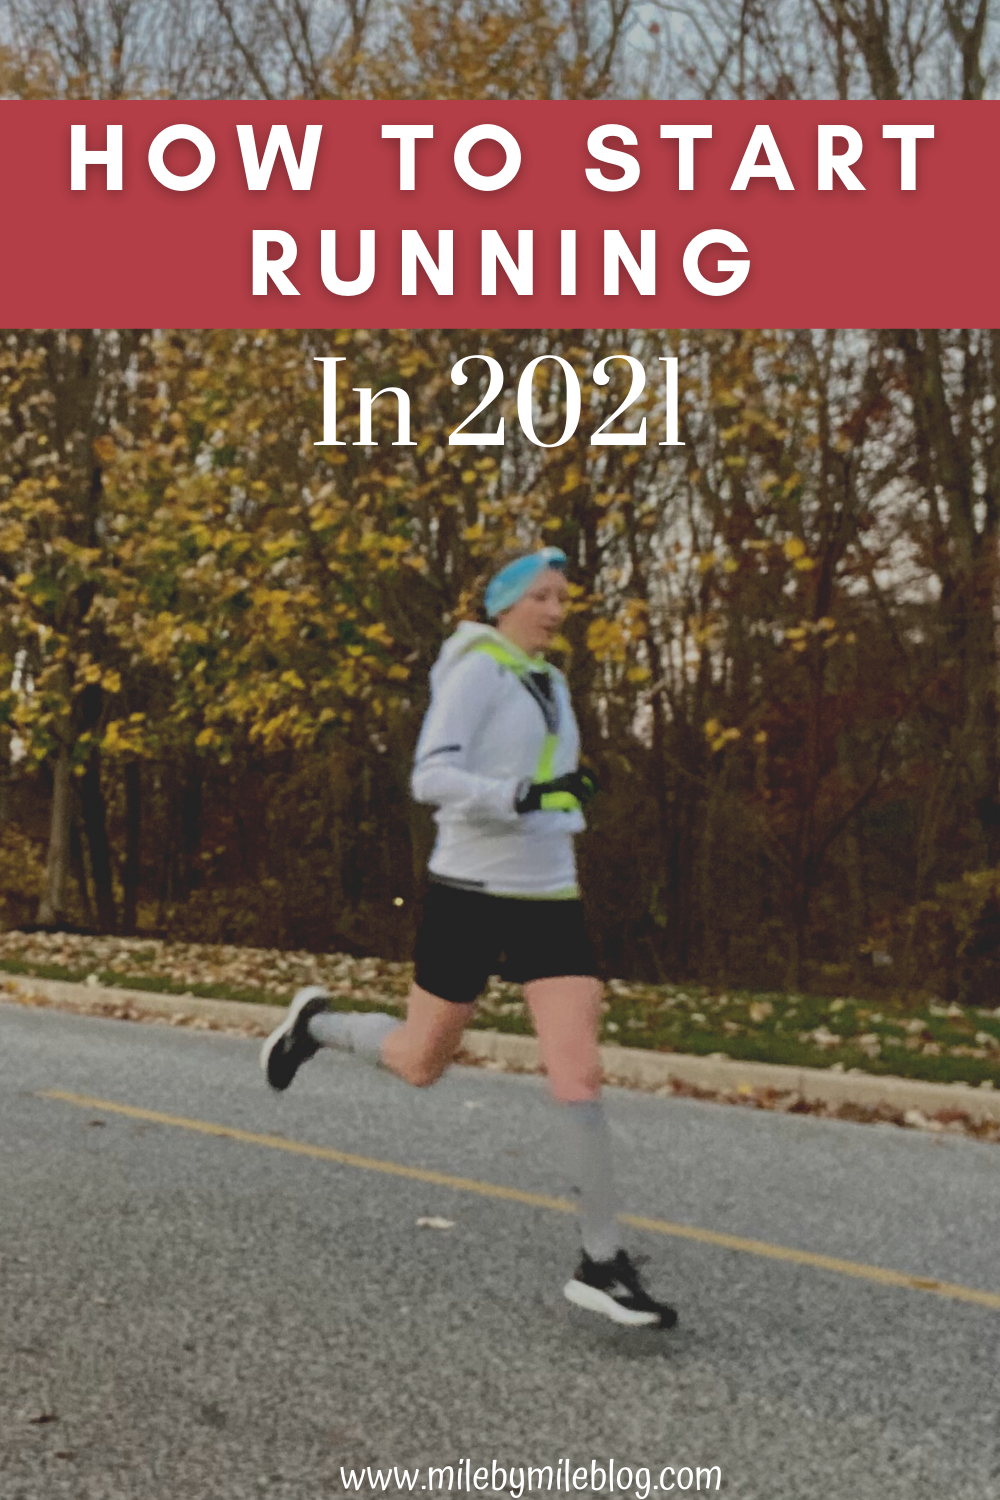 Running is one of the best ways to get in shape and start a fitness routine. With many gyms closed and other resources unavailable, it can be challenging to start running in 2021. Here are some tips to start running safely and to make it a routine that you will stick with throughout the year.